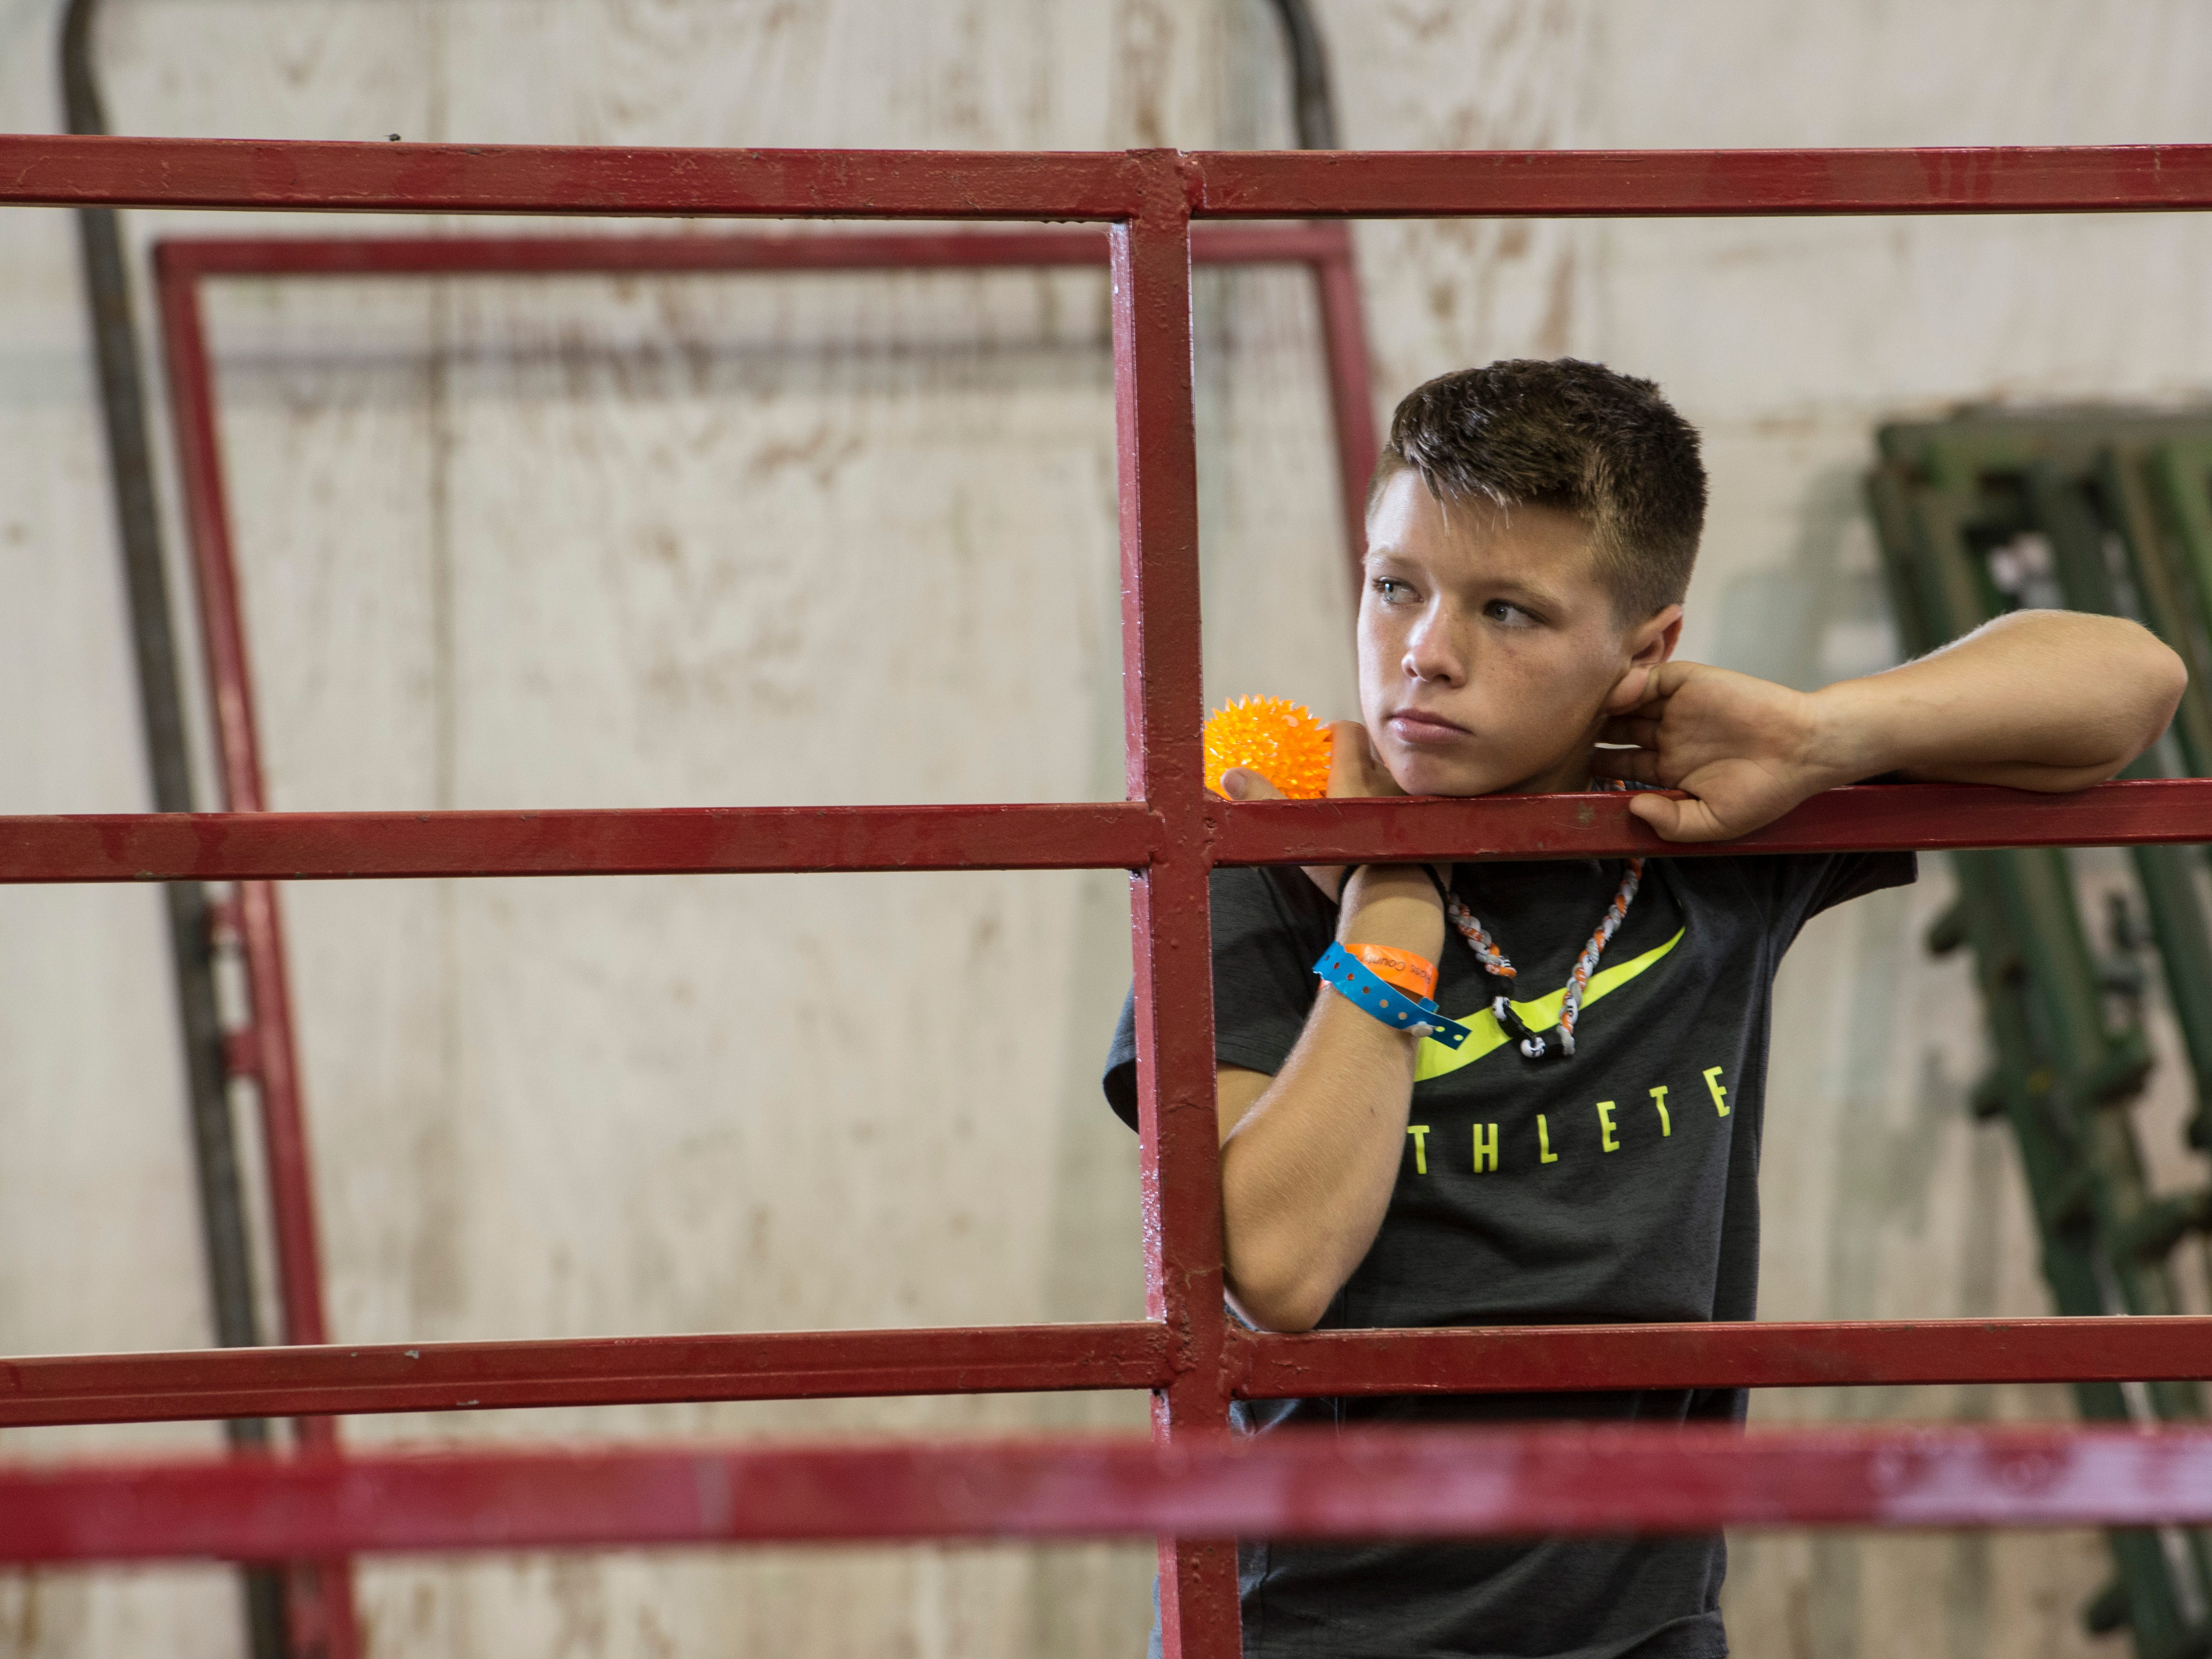 A young fair attendee looks on during the Junior Fair Swine Sale at the Ross County Fair on August 9, 2018 in Chillicothe, Ohio.